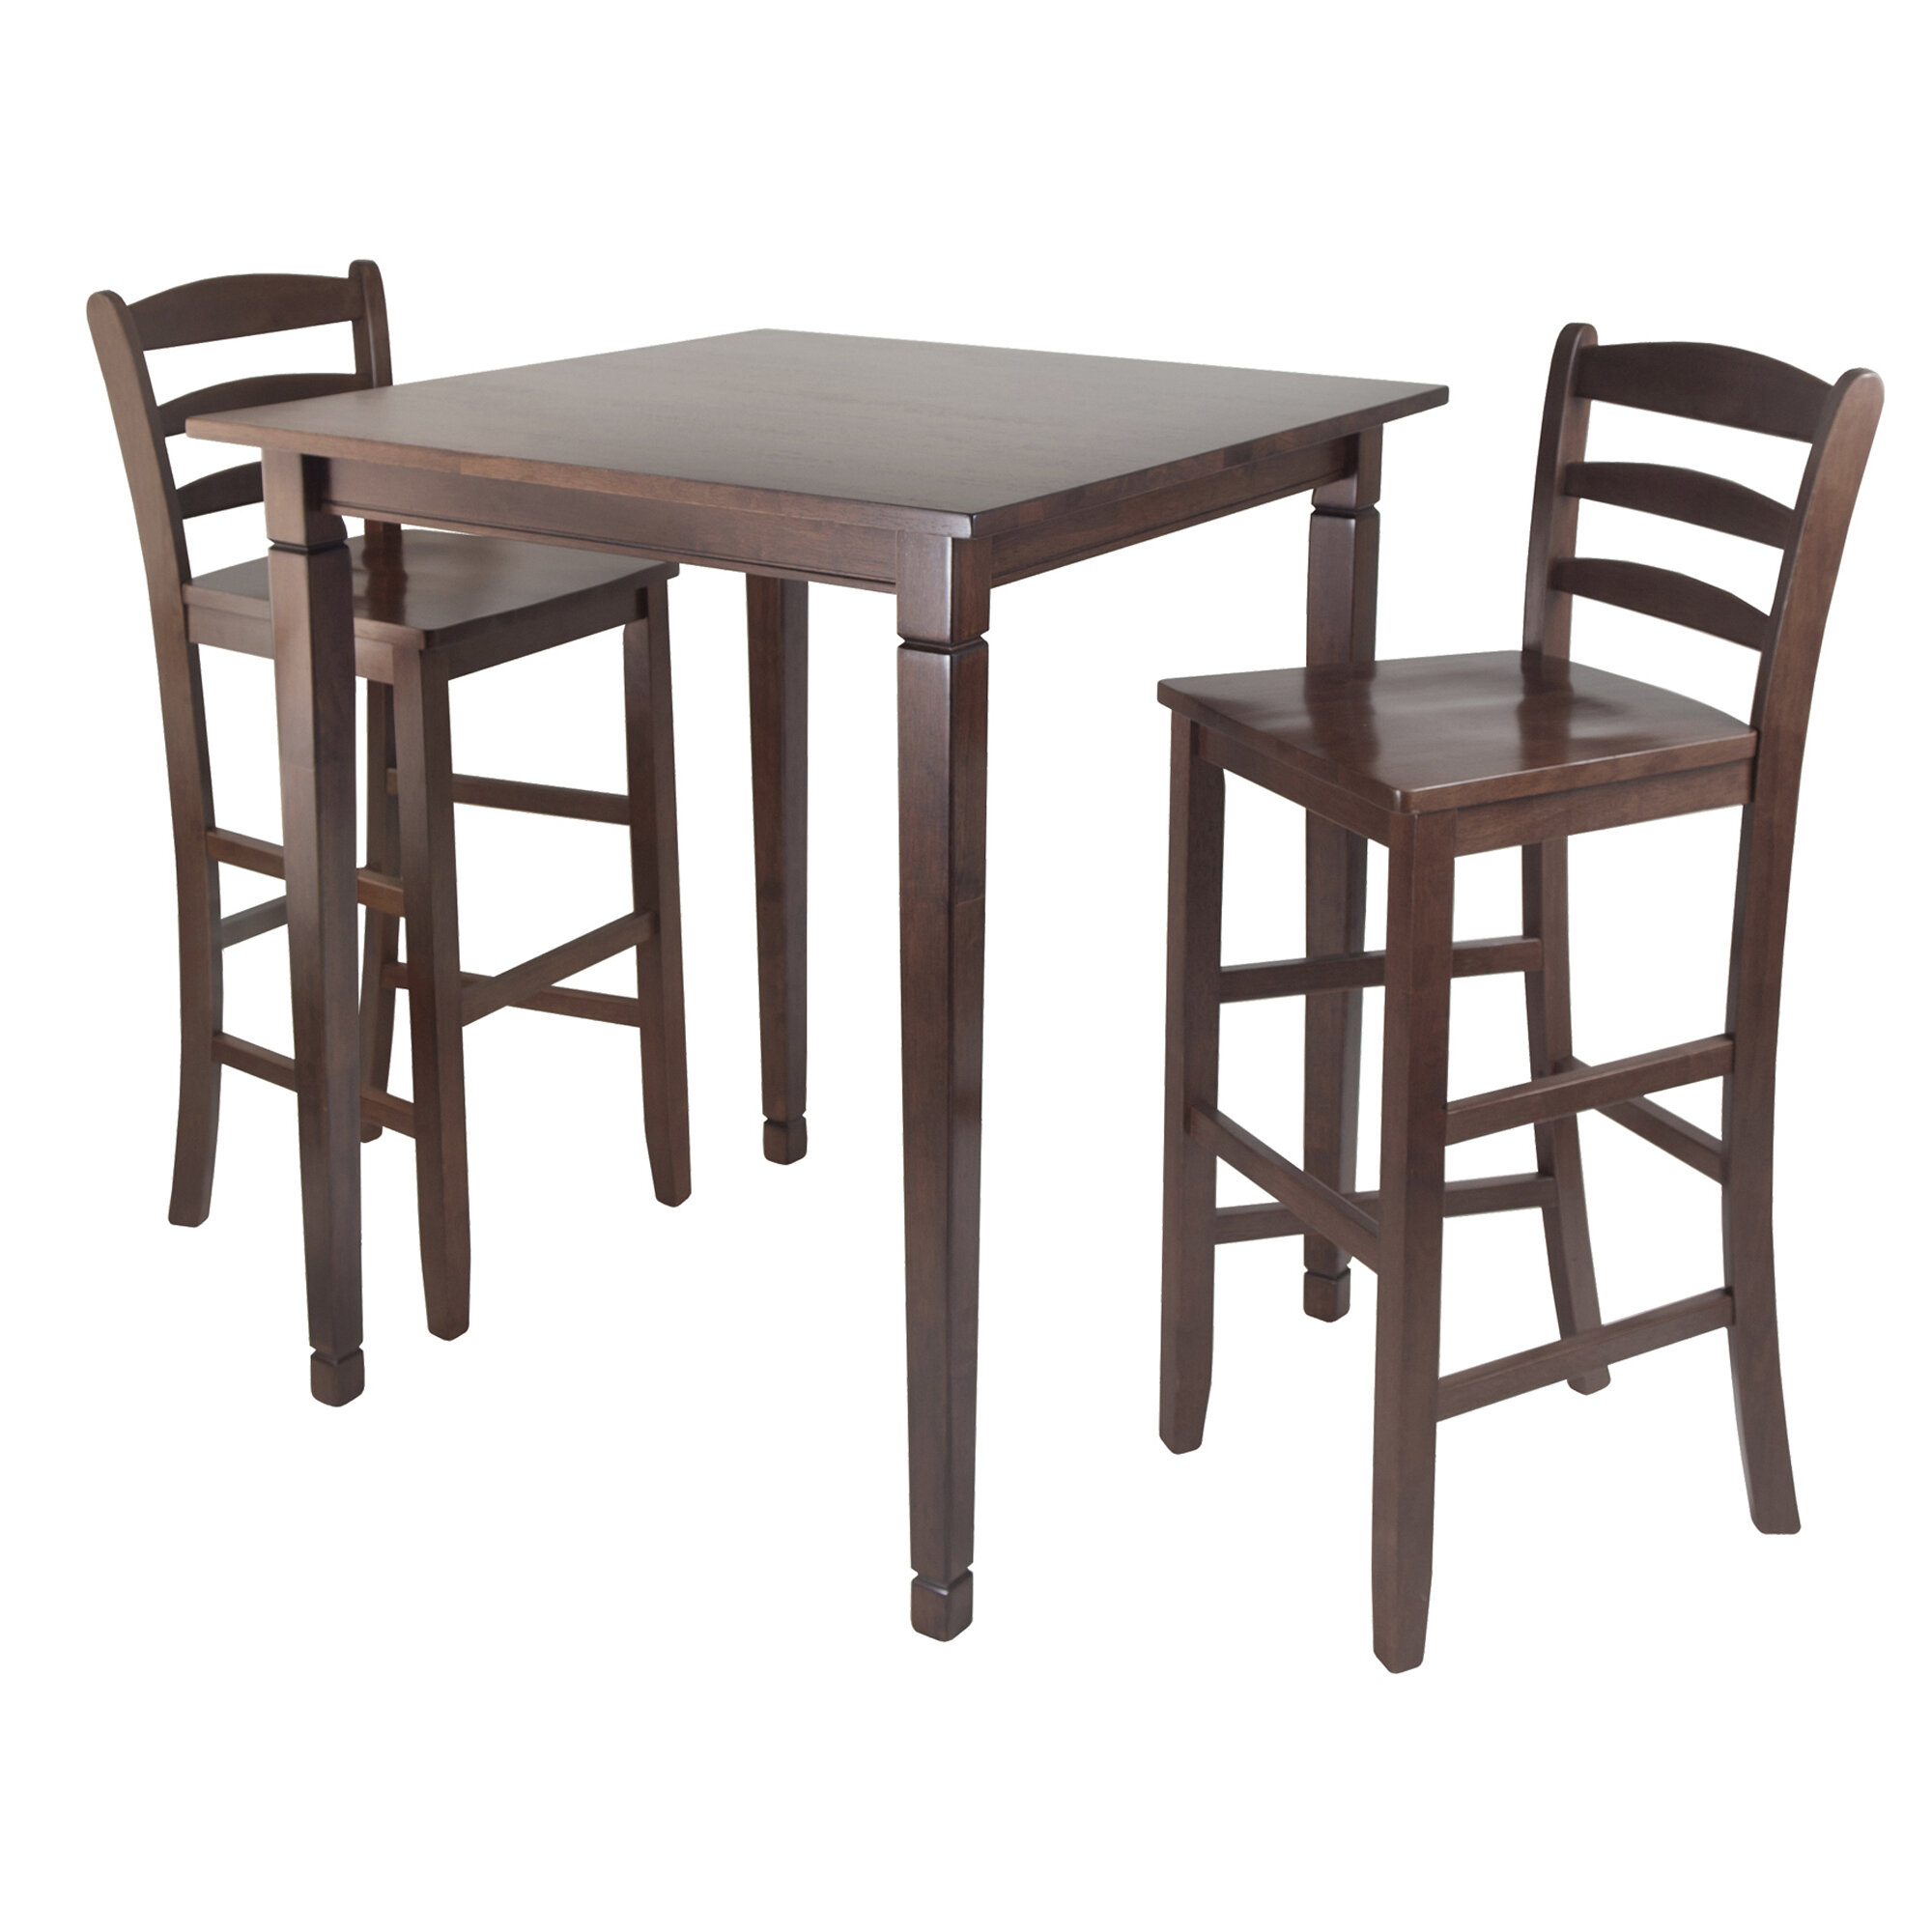 Hemphill 3 Piece Counter Height Pub Table Set Within Most Recent Bettencourt 3 Piece Counter Height Dining Sets (View 9 of 20)